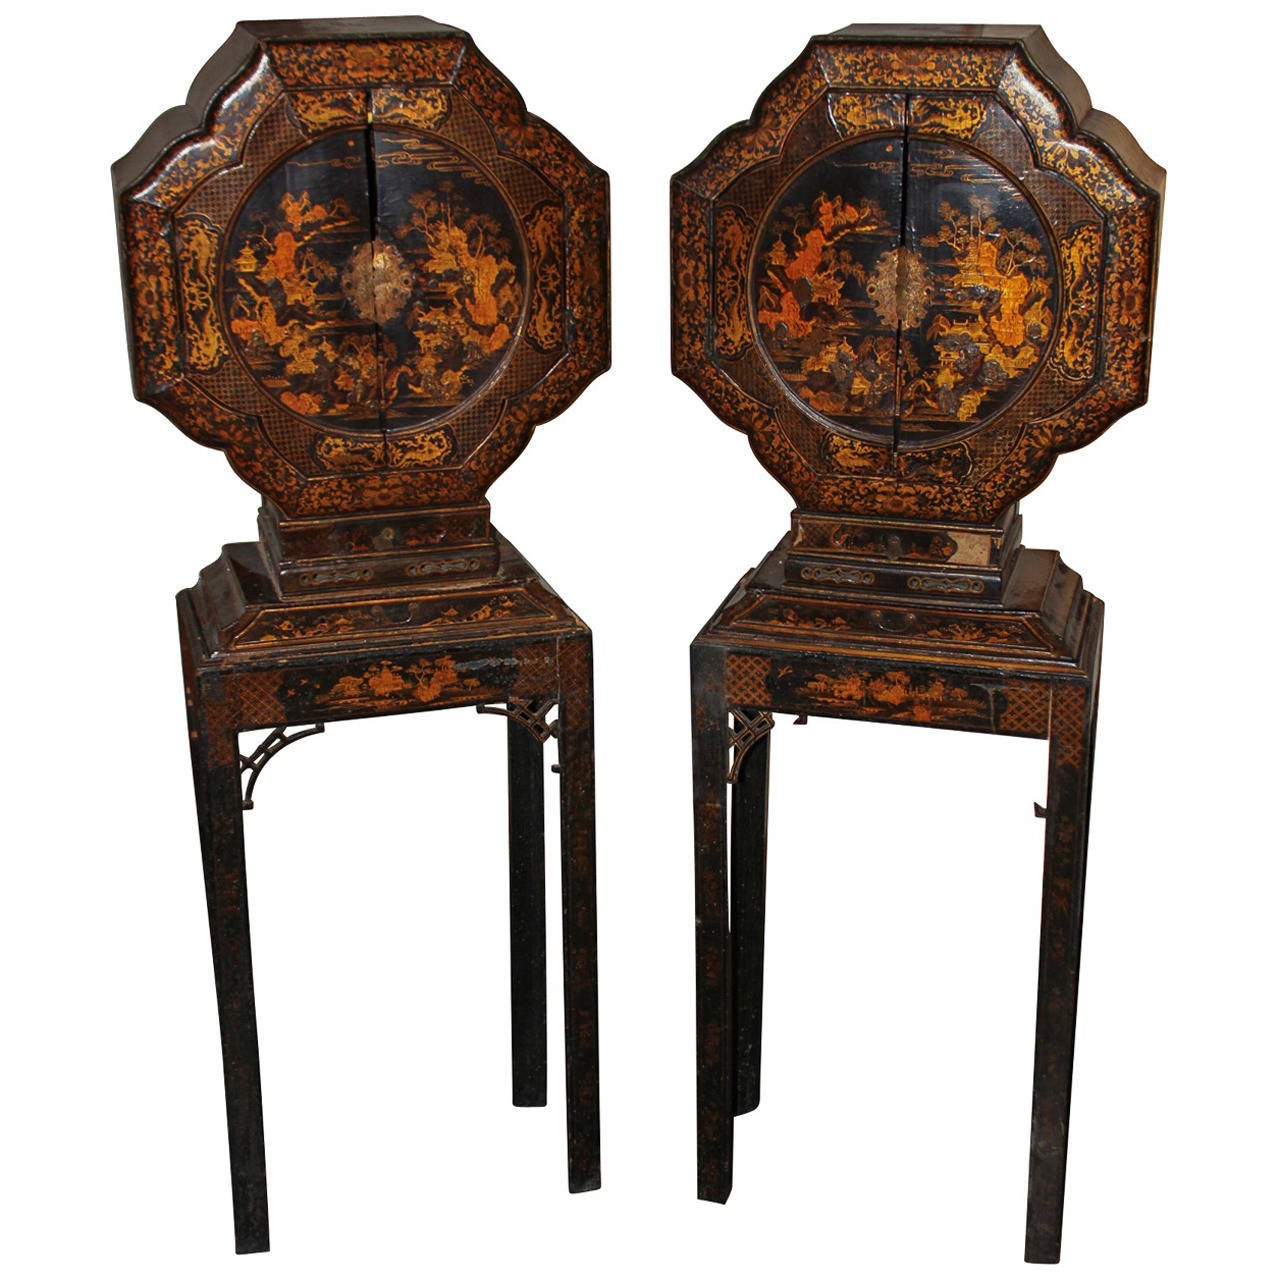 Rare Pair Of English Chinoiserie Lacquered Cabinets At 1stdibs